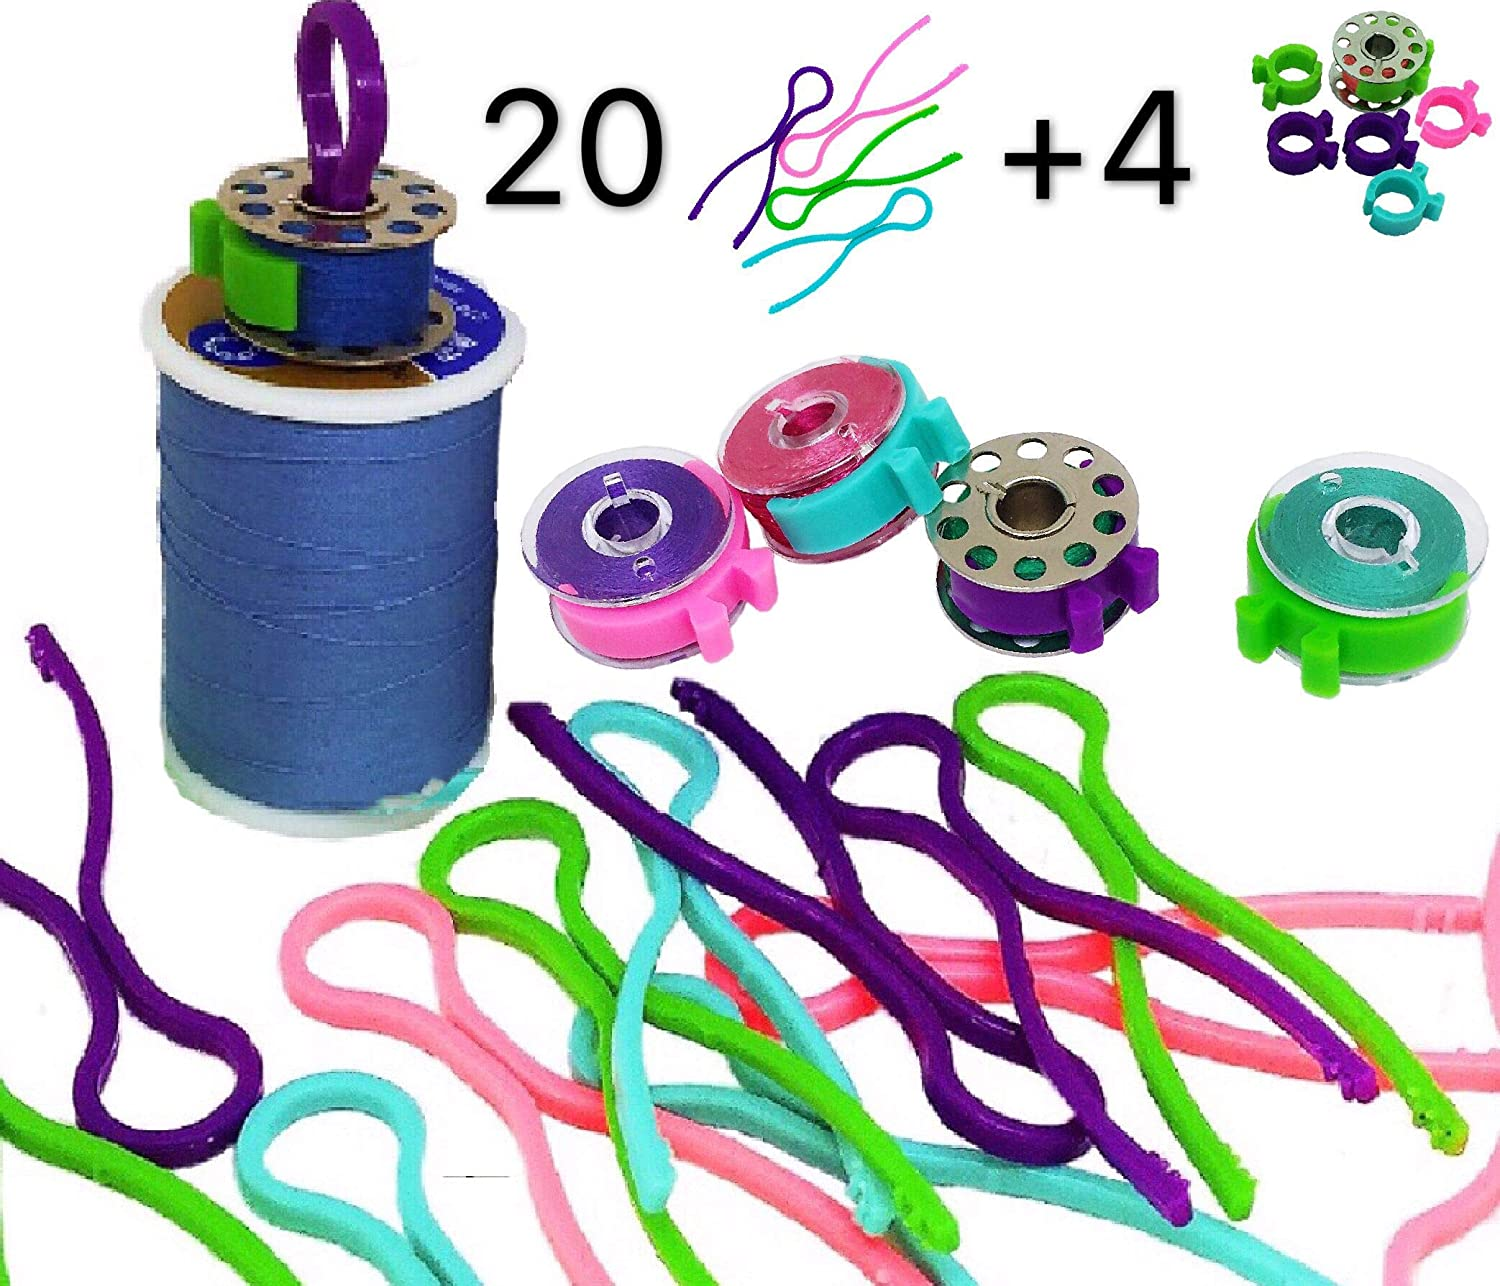 PeavyTailor Bobbin Buddies 24pcs Bobbin Holder Clamp Clips Thread Organizer Matching Thread Spools Together Sewing Machine 20+4 peavytailor.com